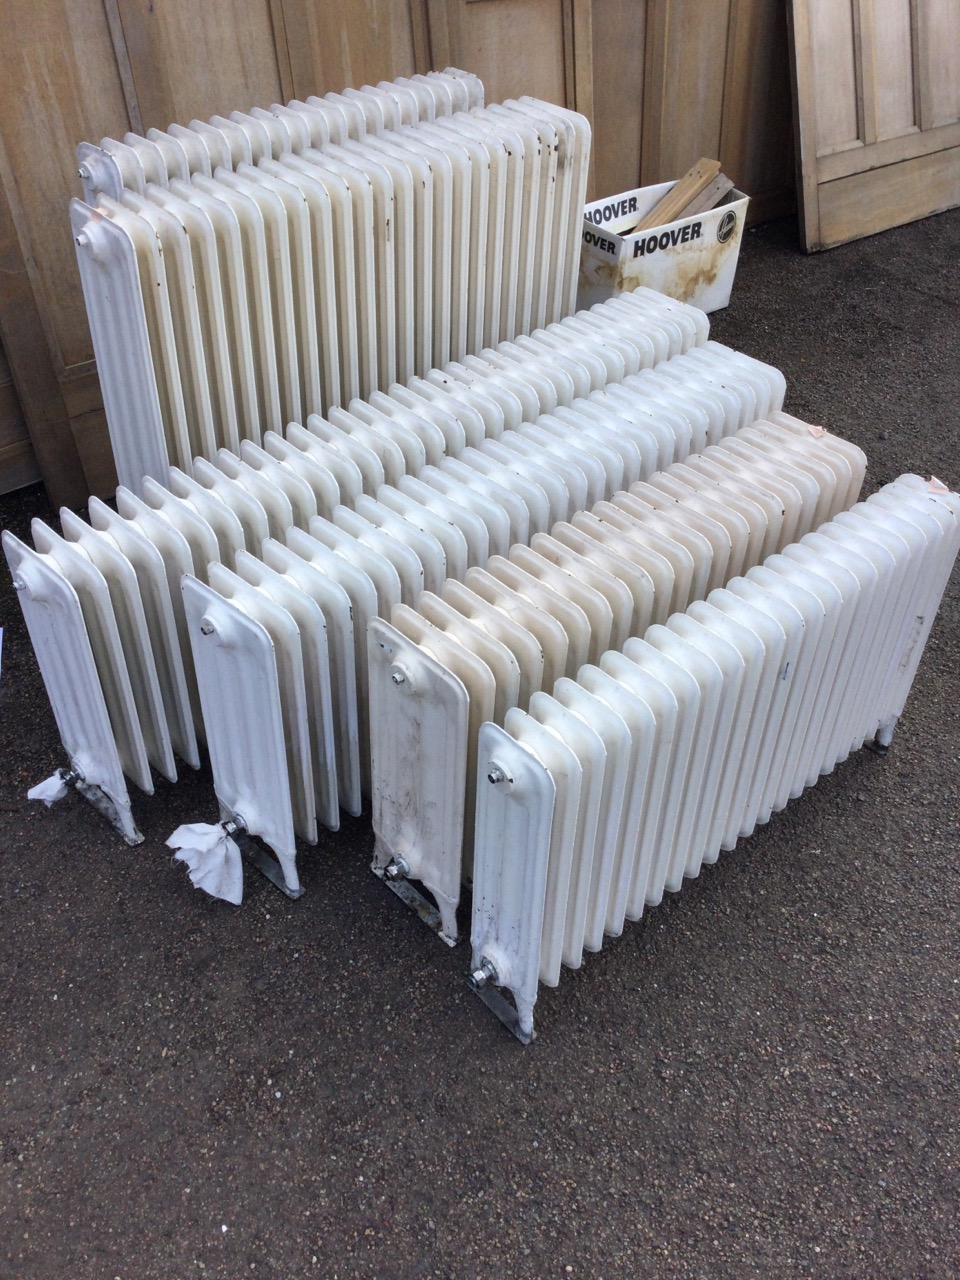 Six miscellaneous cast iron radiators, the panels on angled legs - various heights & lengths, and - Image 3 of 3